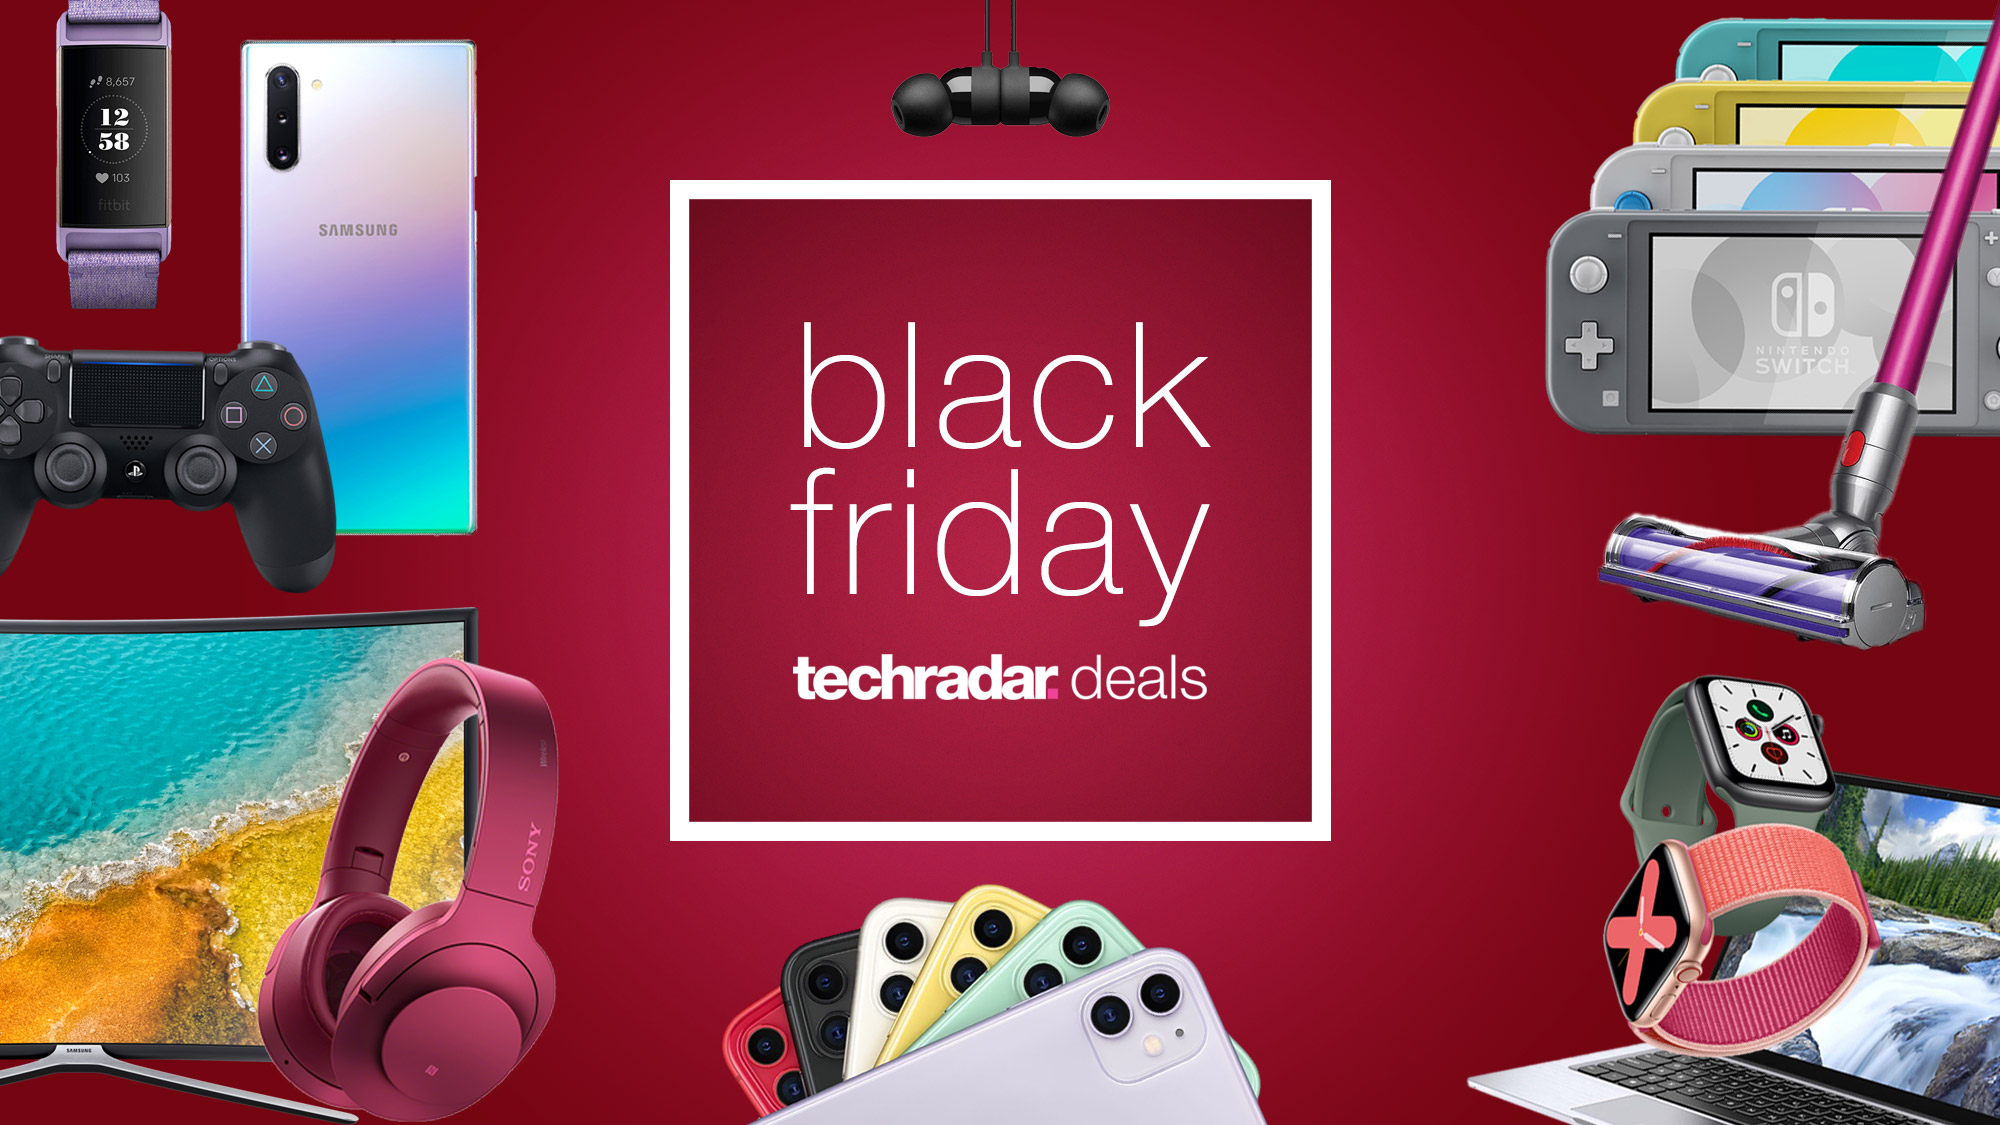 the-best-black-friday-deals-2019:-your-last-chance-to-get-online-discounts